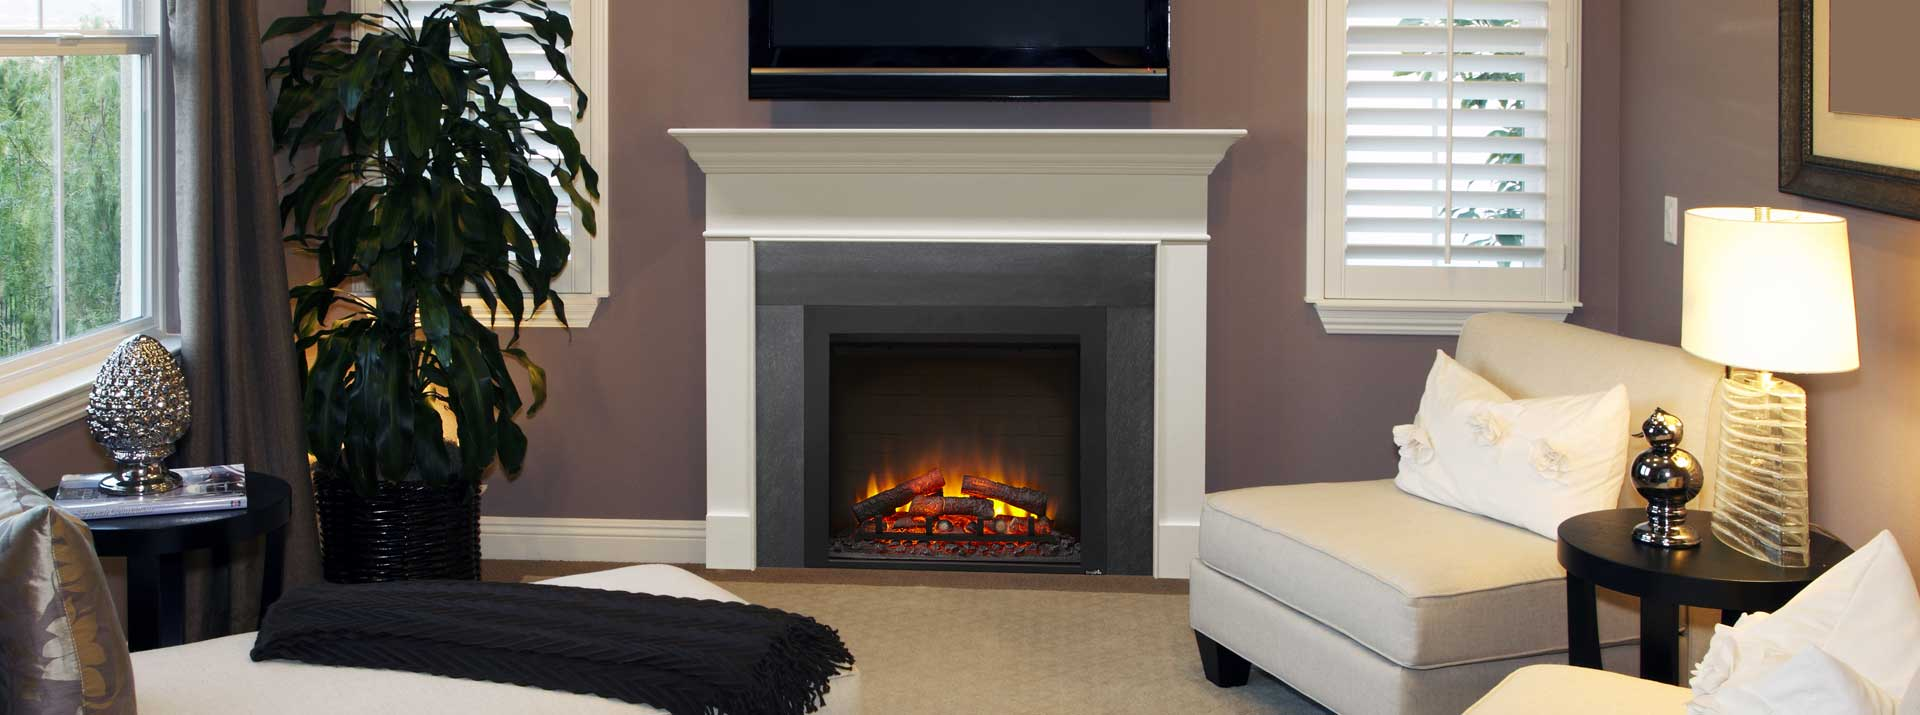 Simplifire Built In Electric Fireplace Series Monessen Hearth